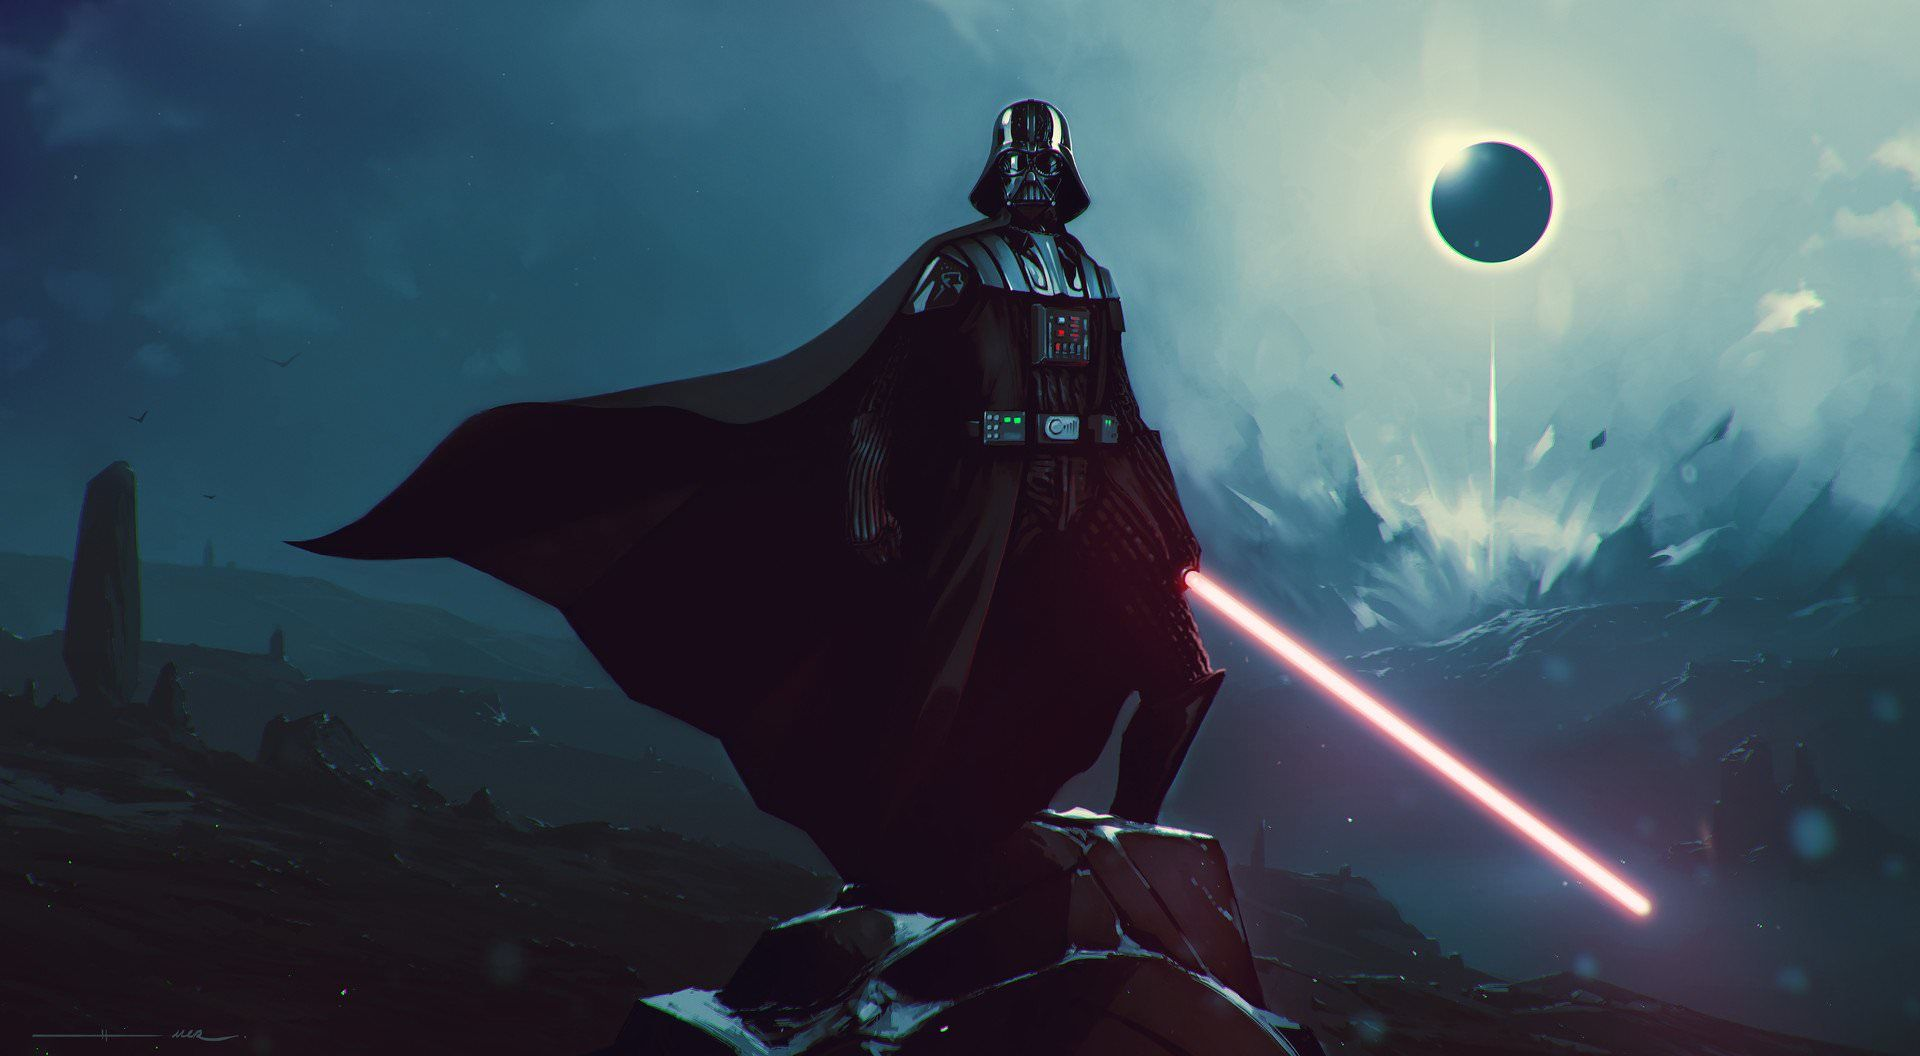 Star Wars Wallpaper Hd Star Wars Wallpaper Darth Vader Wallpaper Star Wars Background